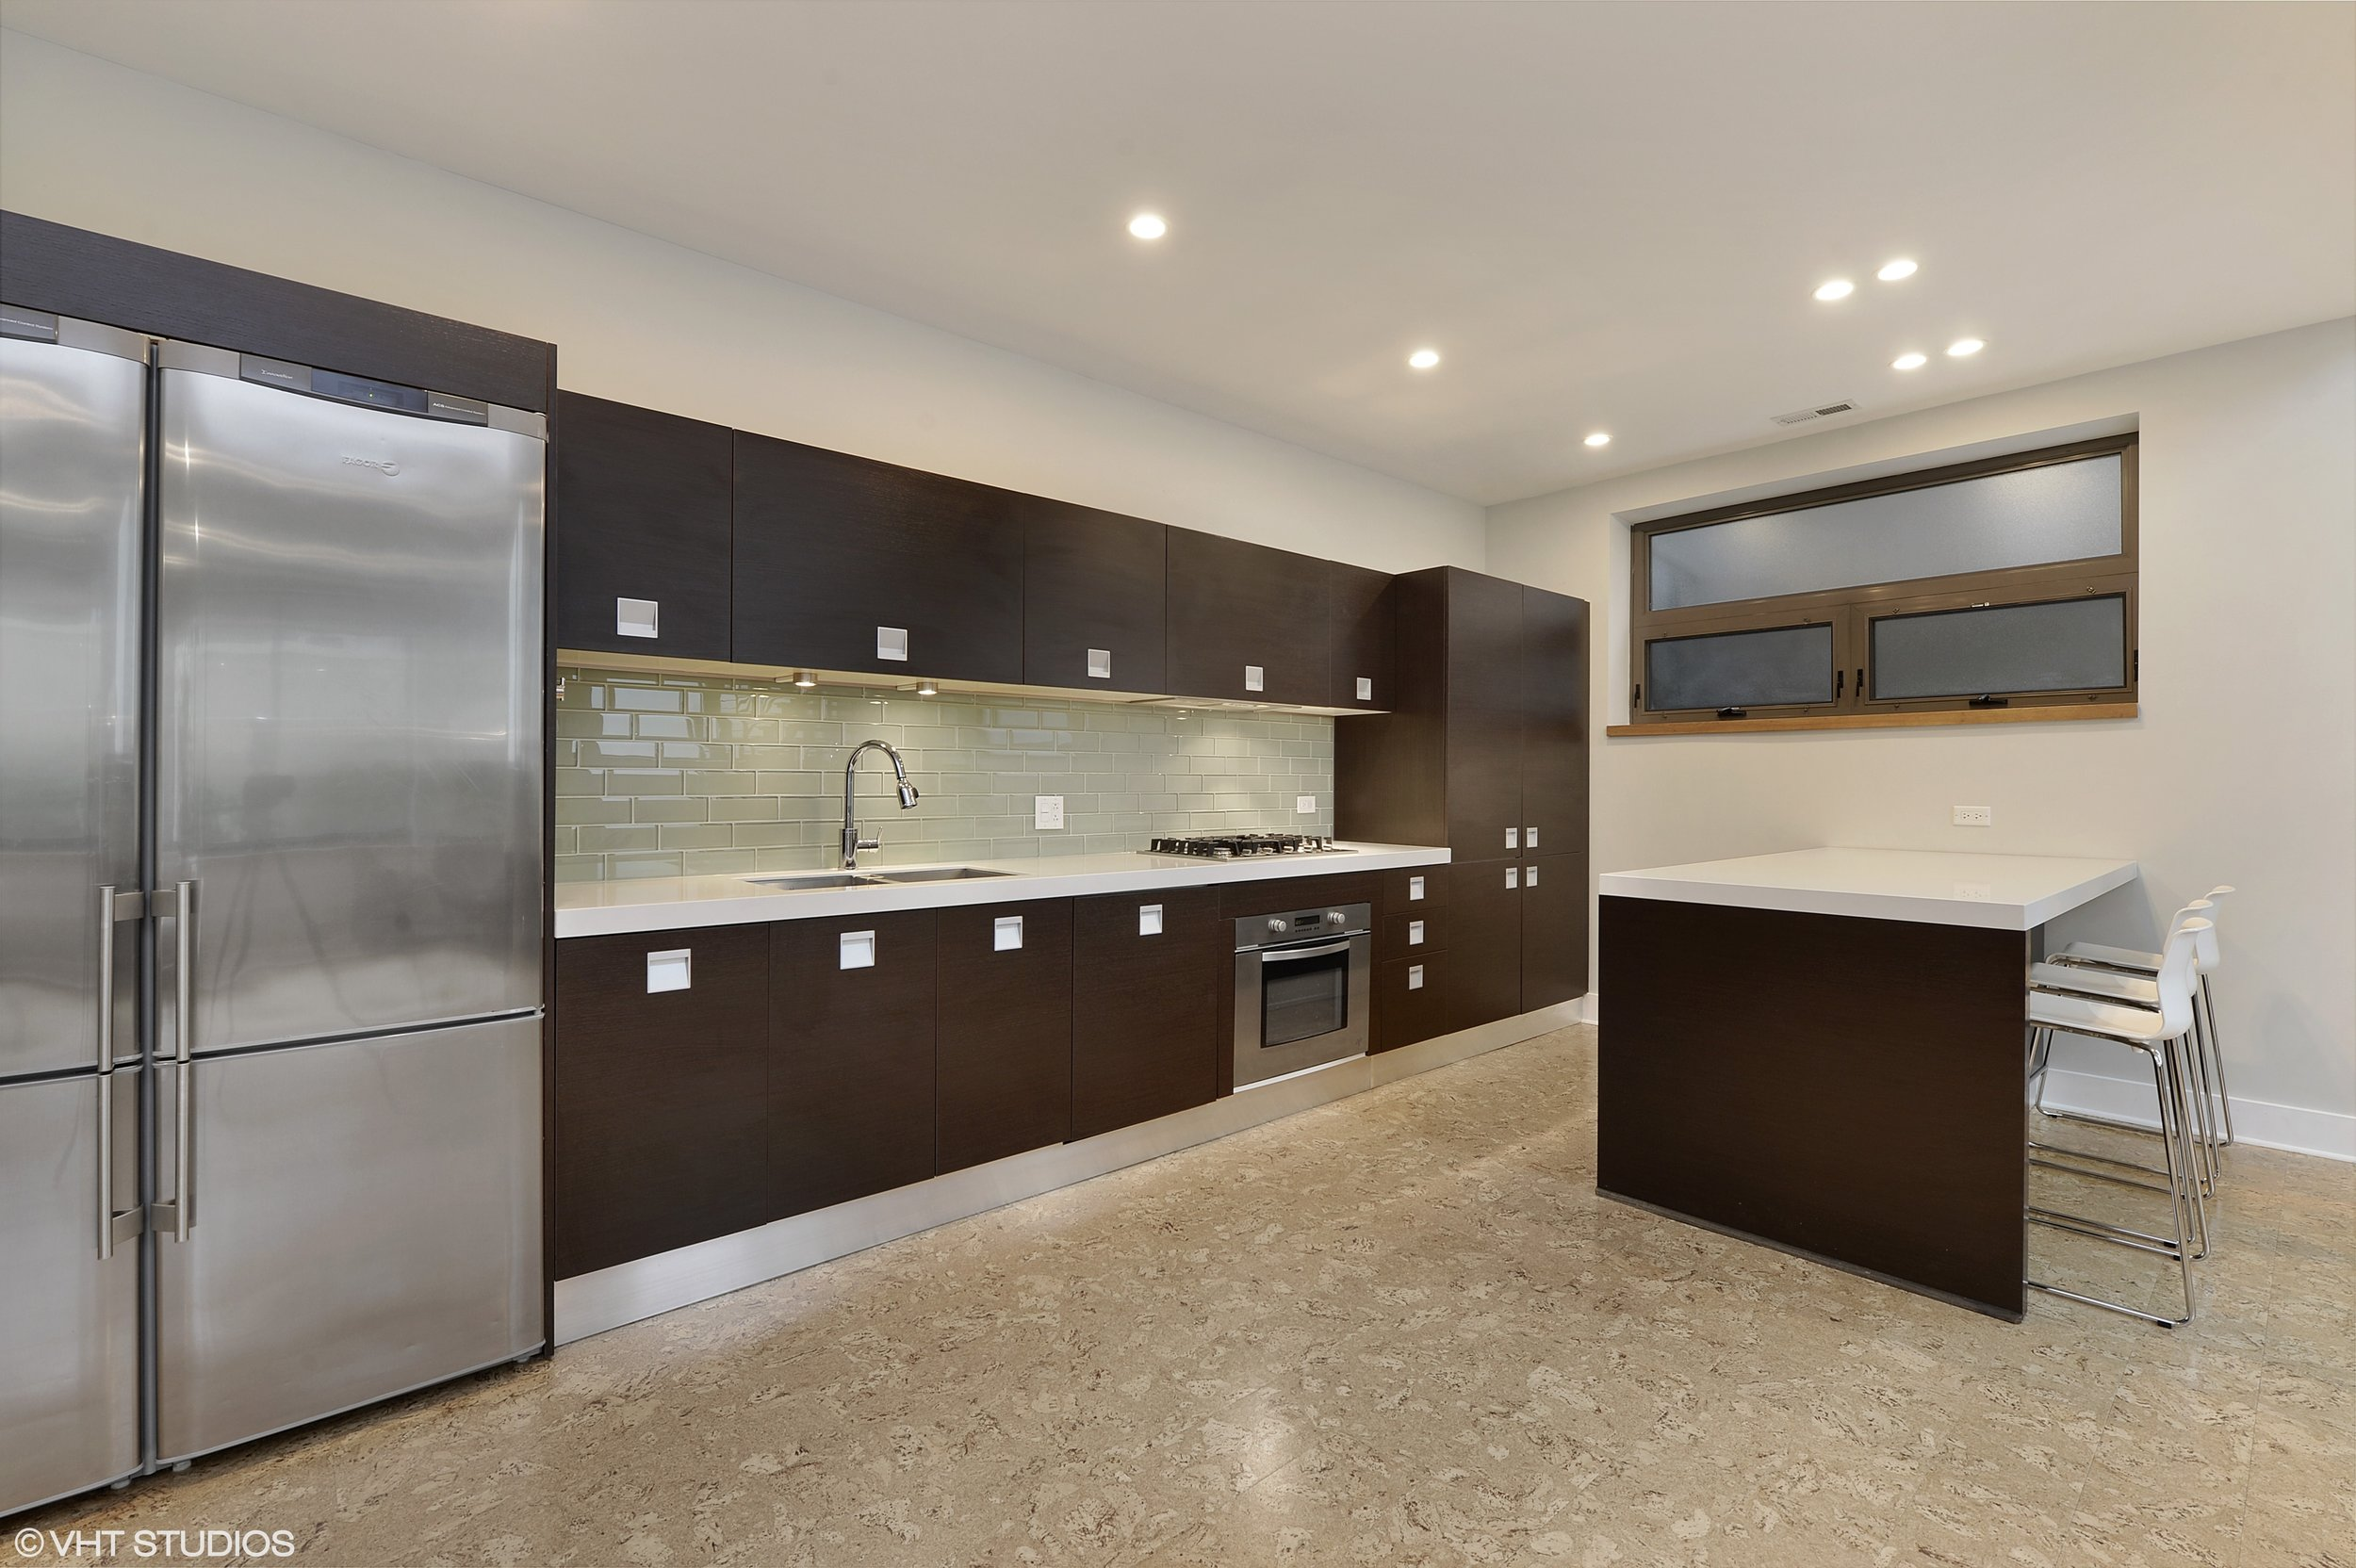 07_1529WestChestnutSt_101_5_Kitchen_HiRes.jpg